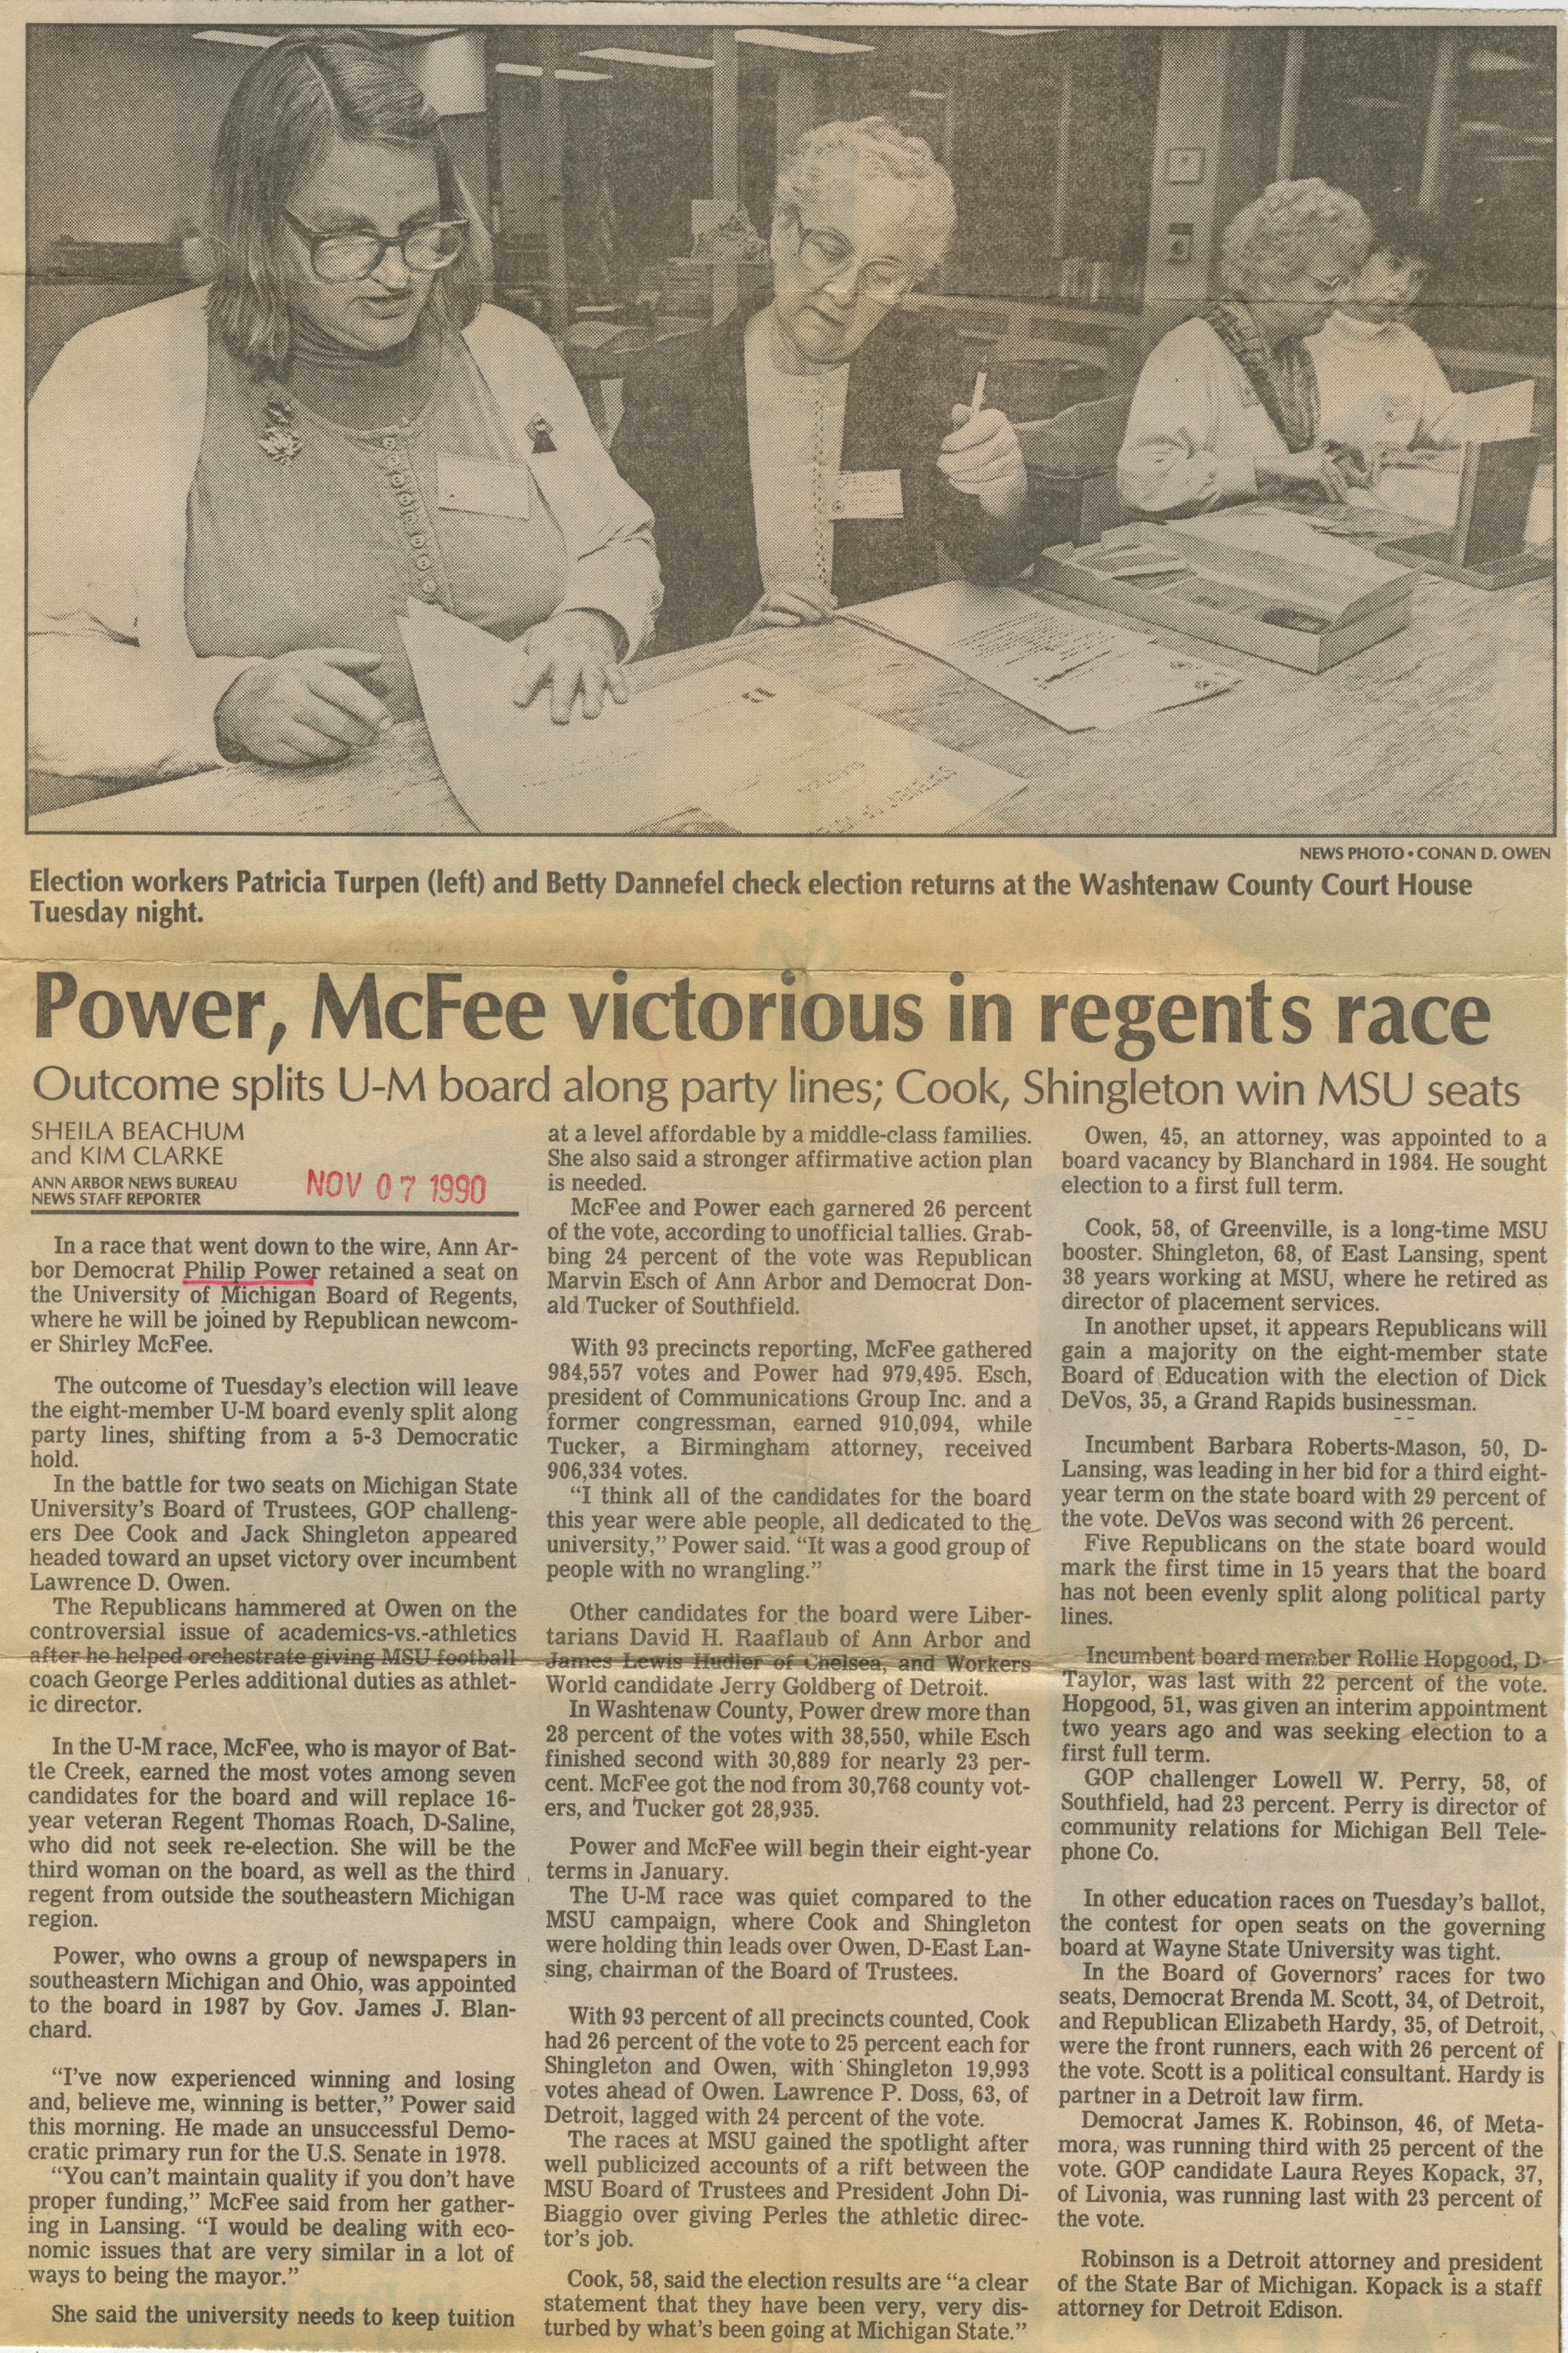 Power, McFee victorious in regents race image